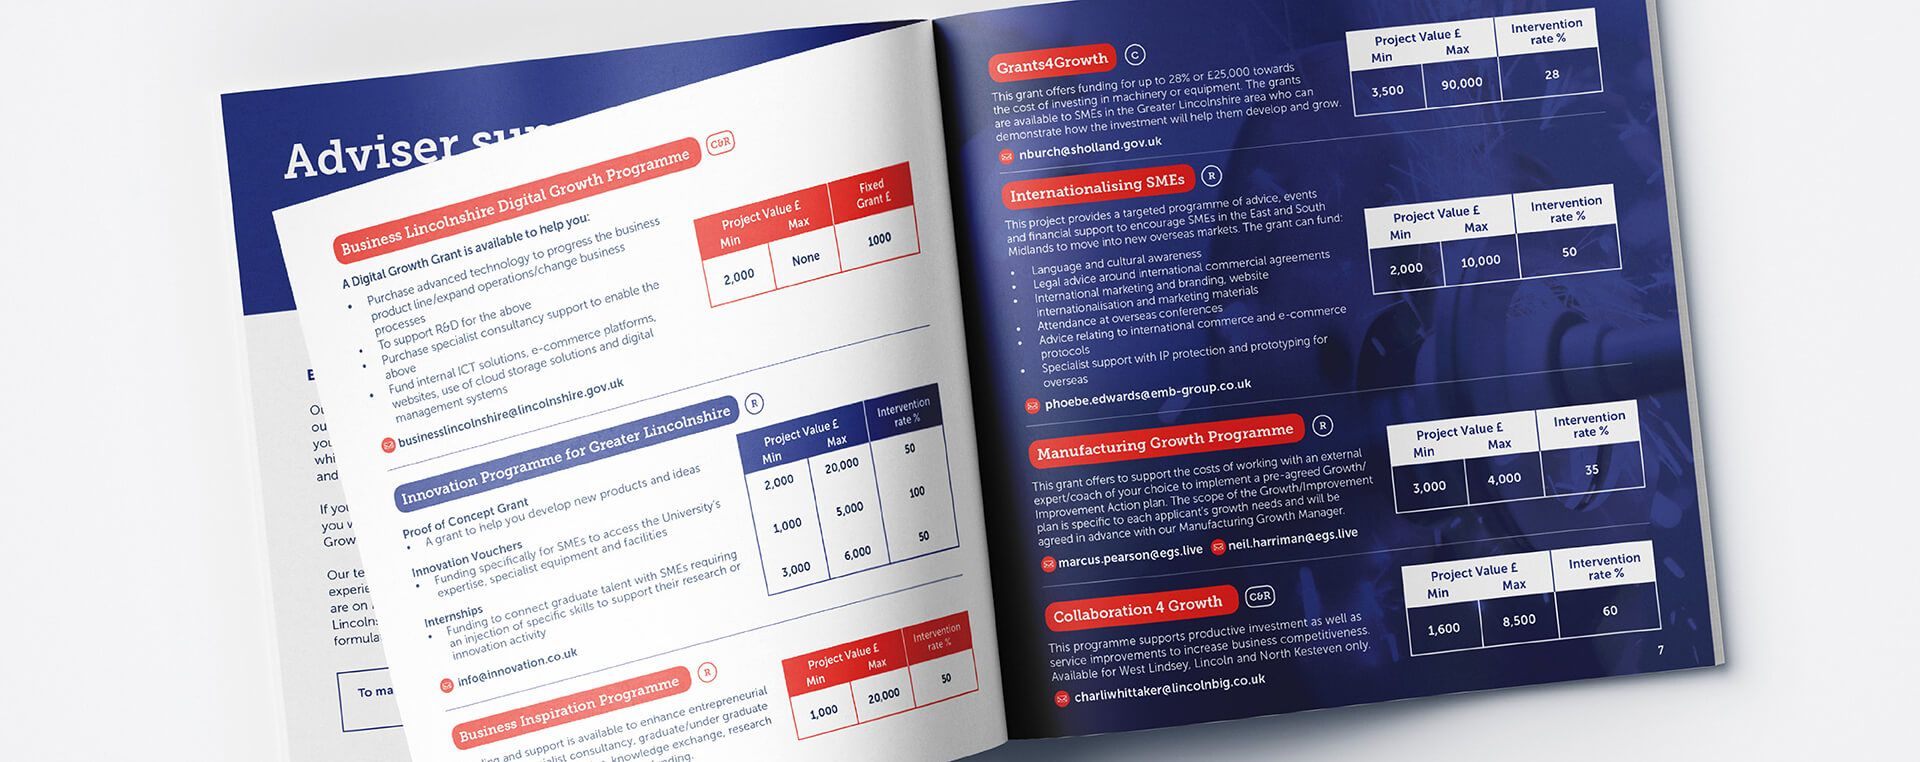 An opened business growth guide revealing pages detailing different growth support programmes.